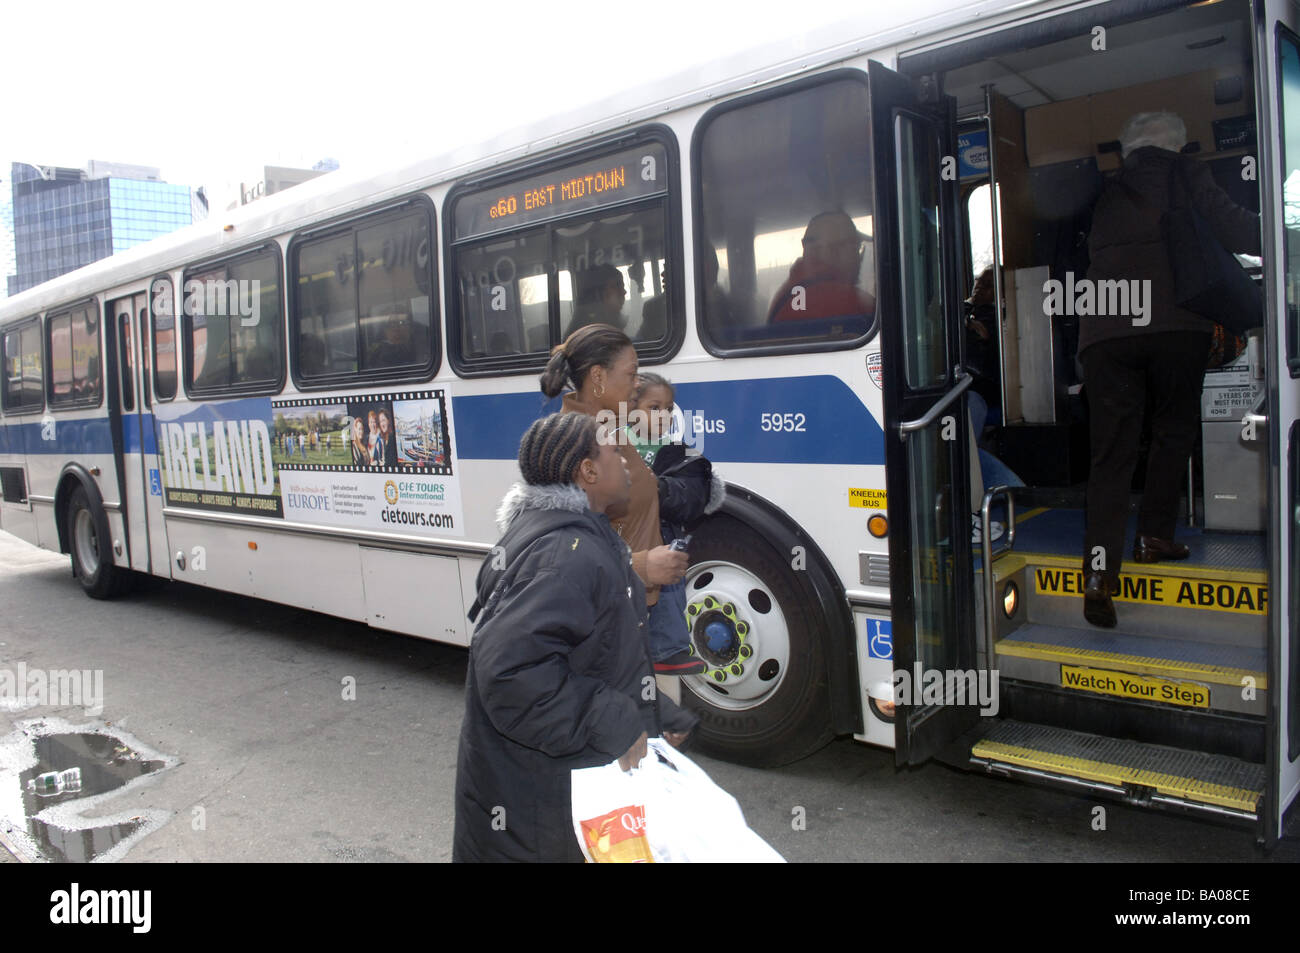 A family boards the B60 bus on Queens Boulevard in the New York borough of Queens Stock Photo